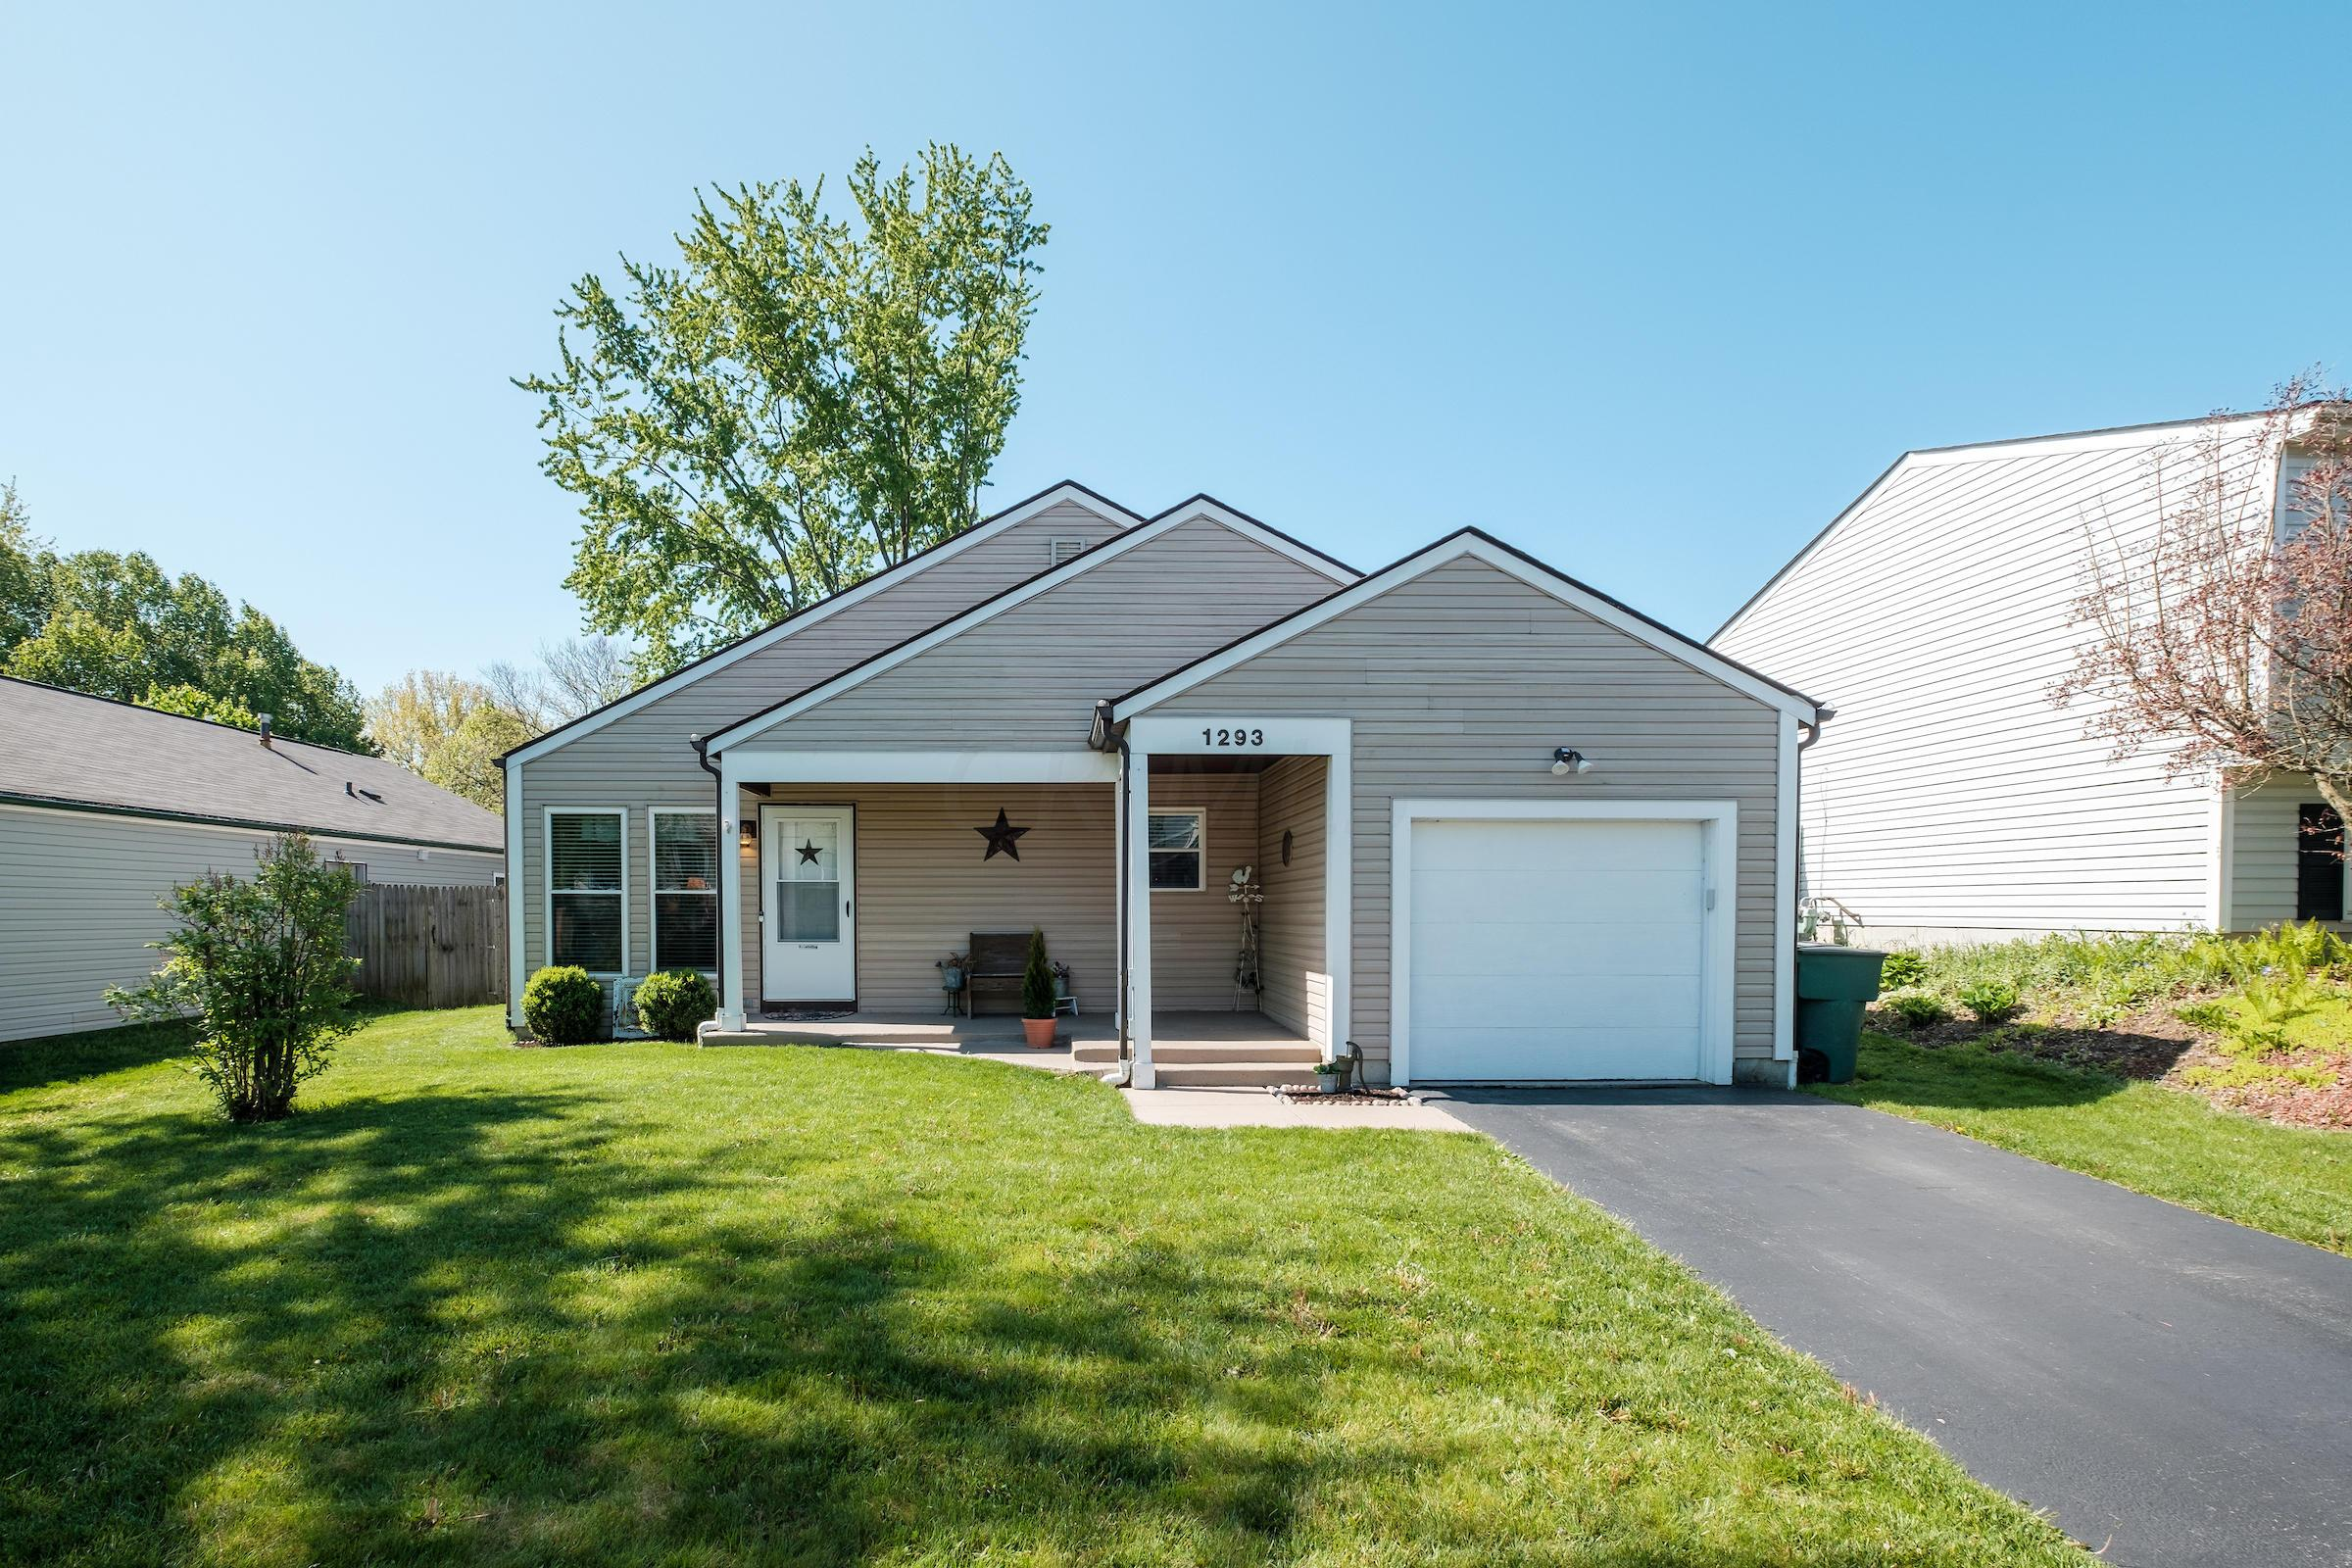 Photo of 1293 Clement Drive, Worthington, OH 43085